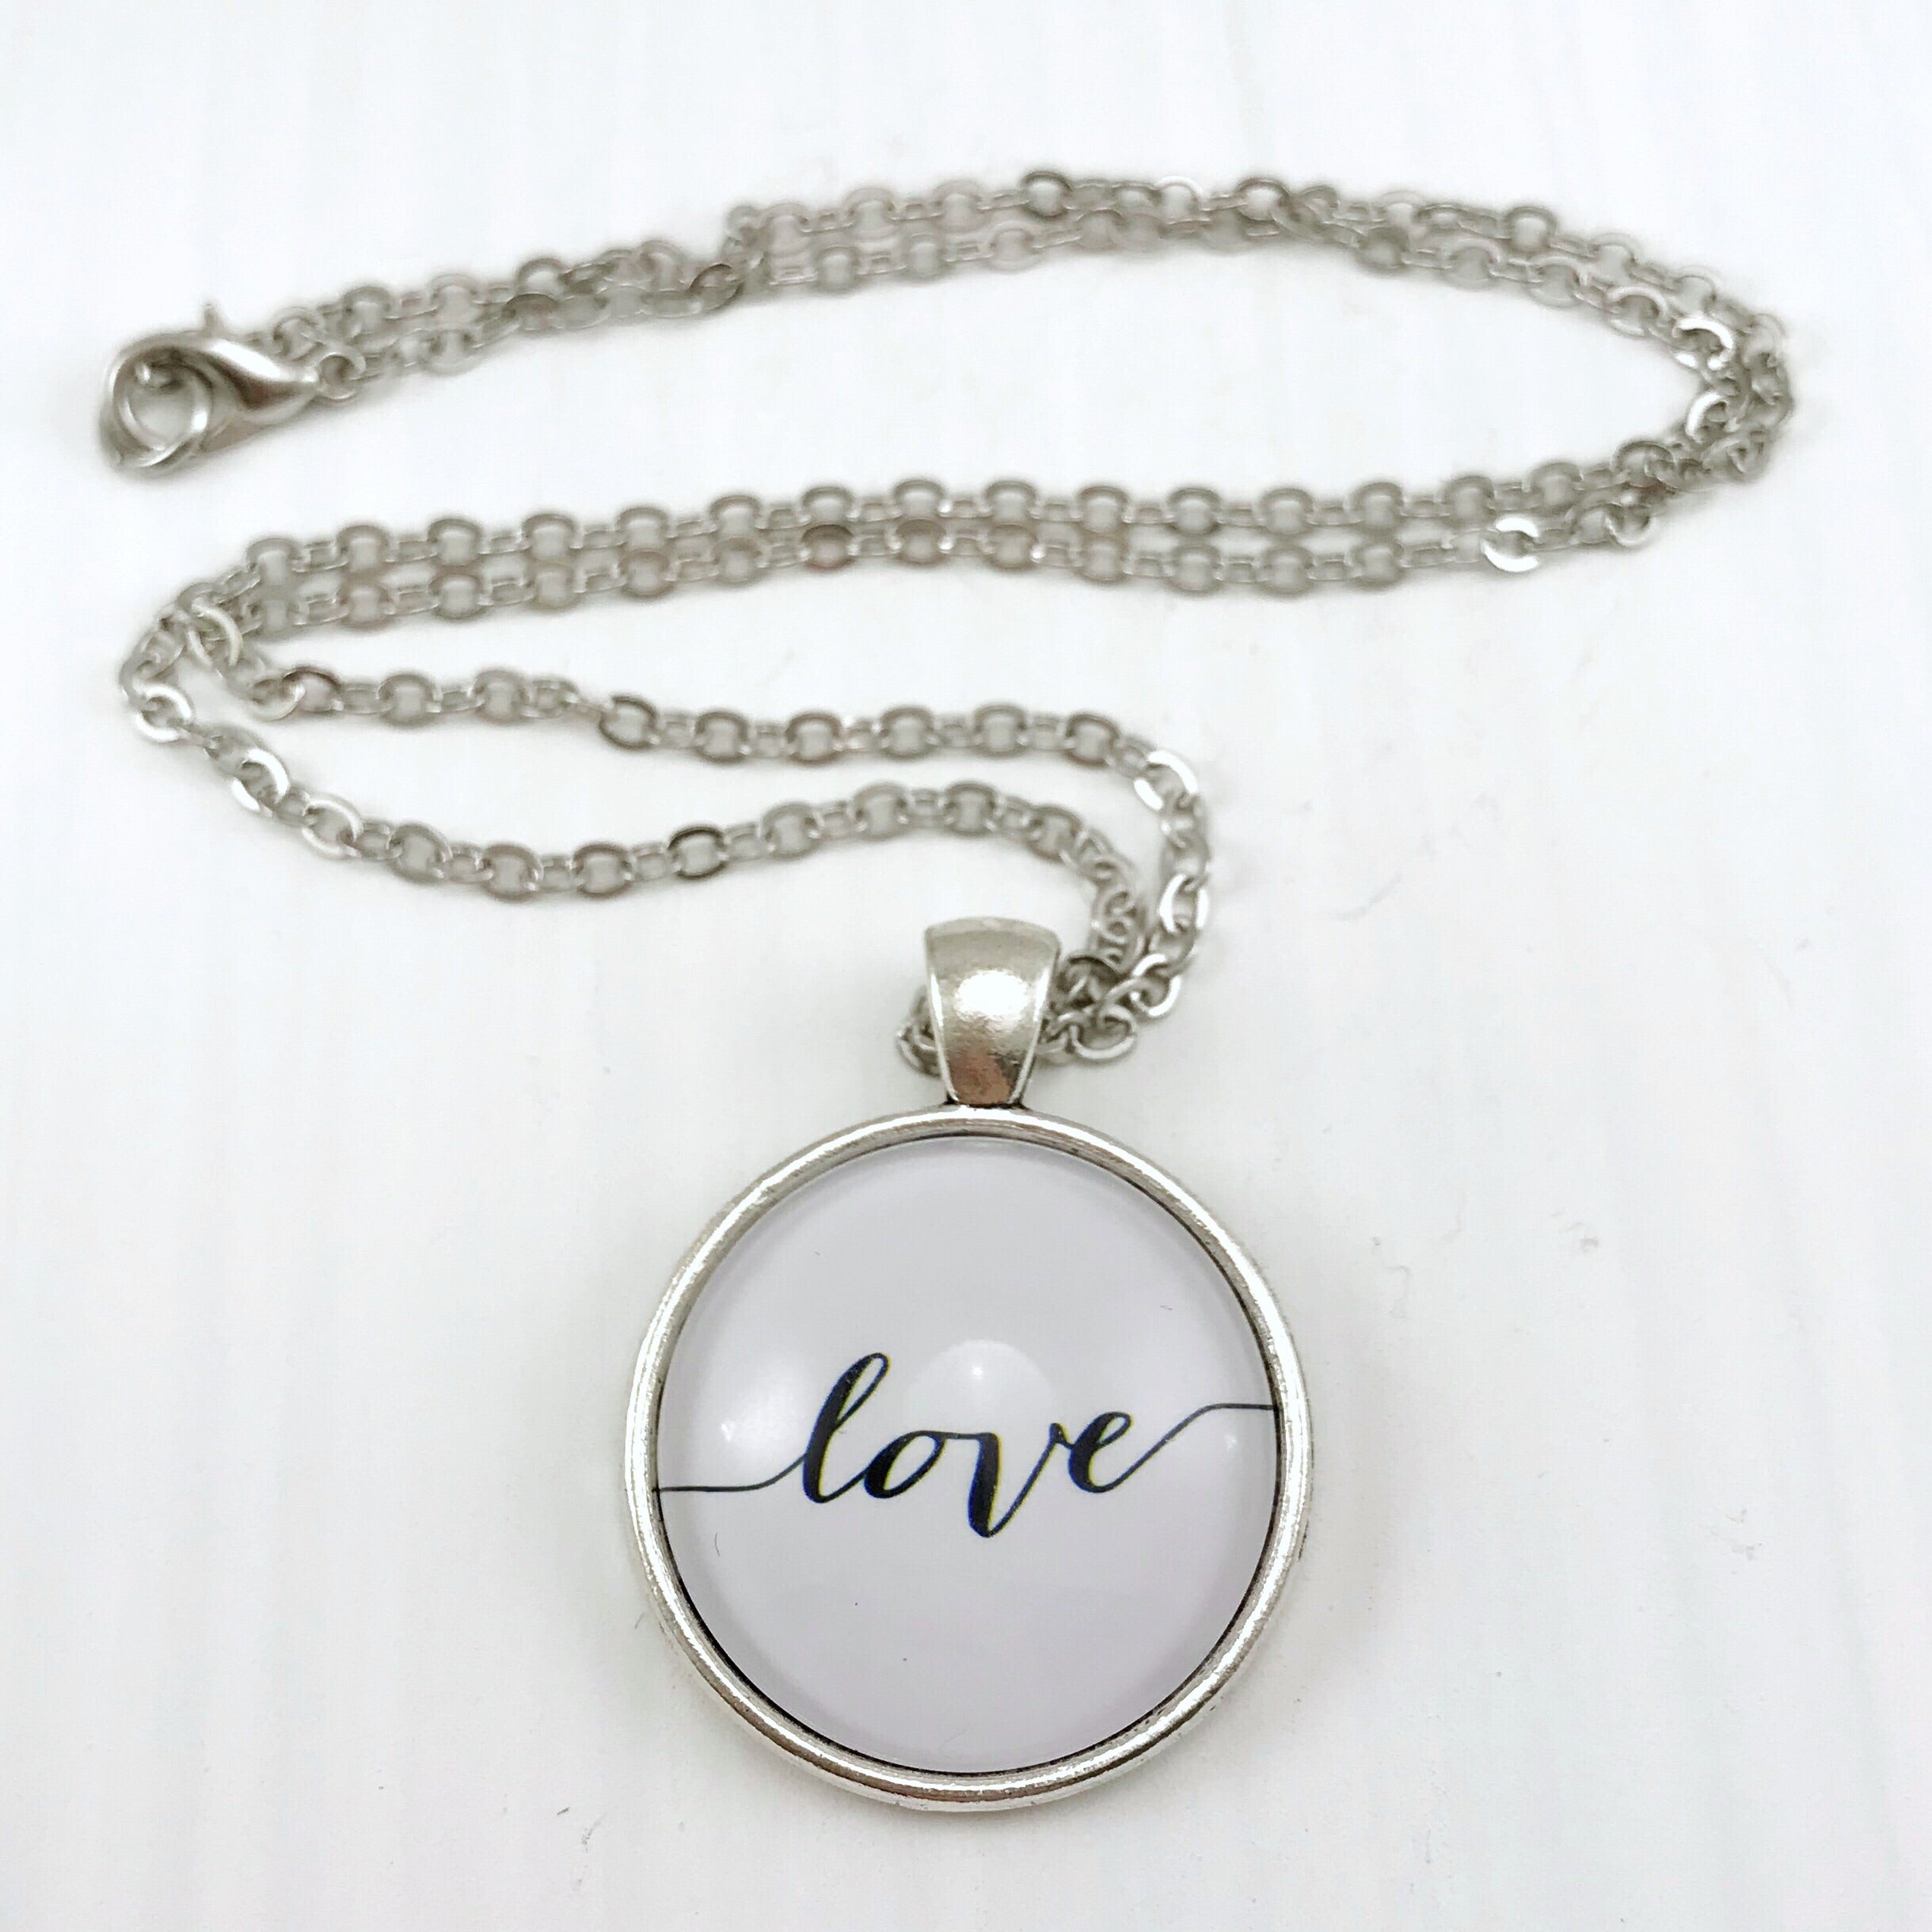 Love Necklace - Antique Silver